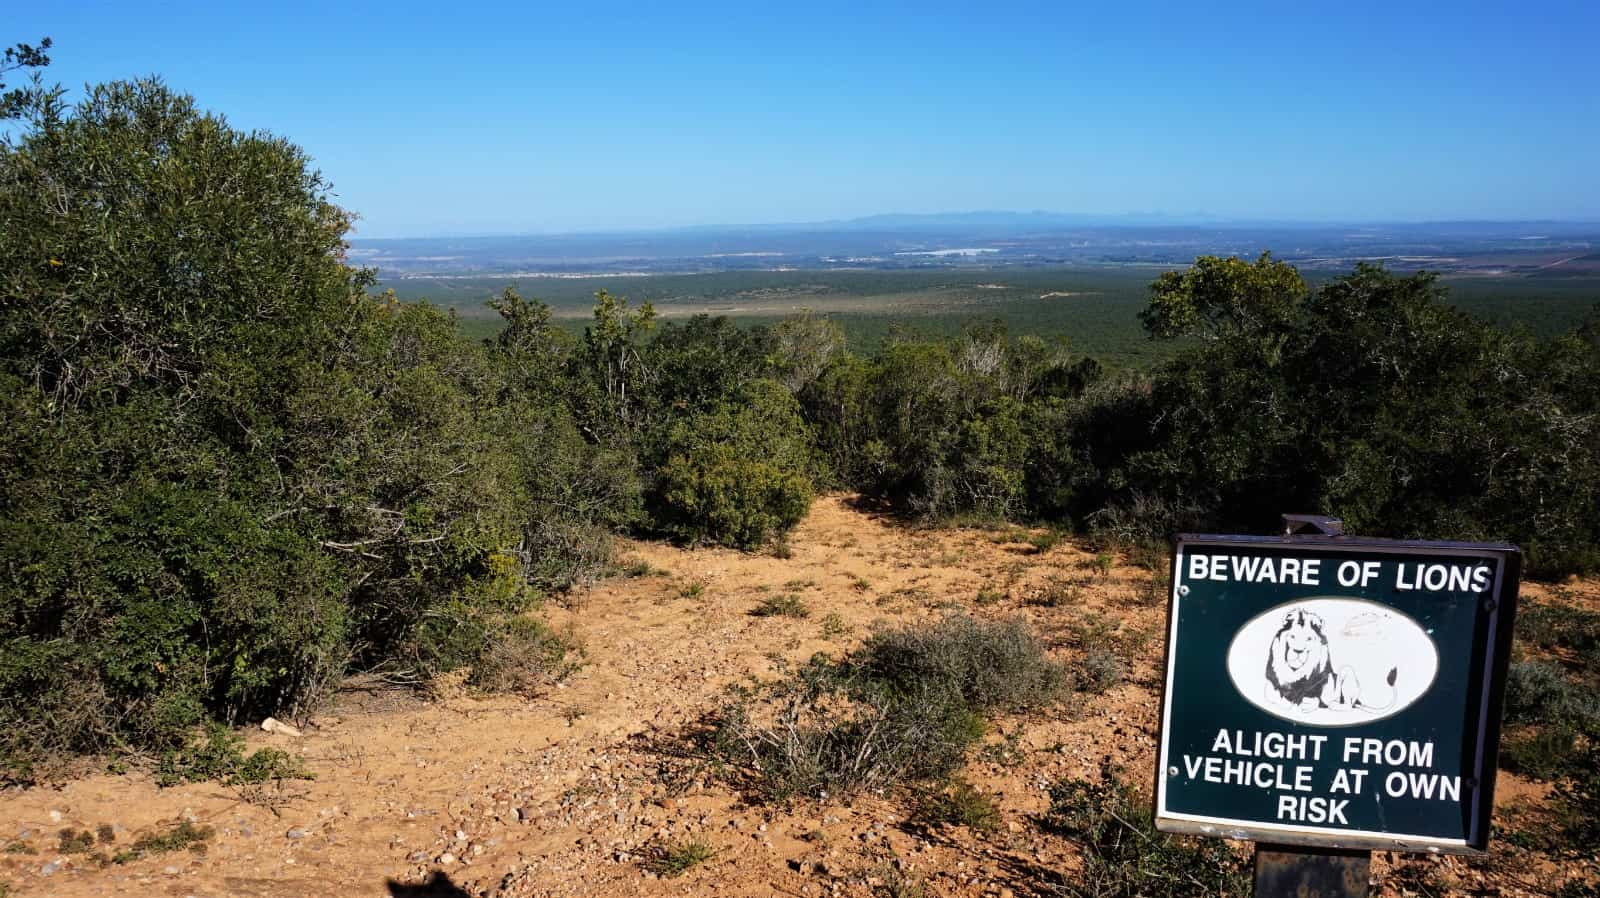 Lookout point at Addo Elephant National Park, South Africa